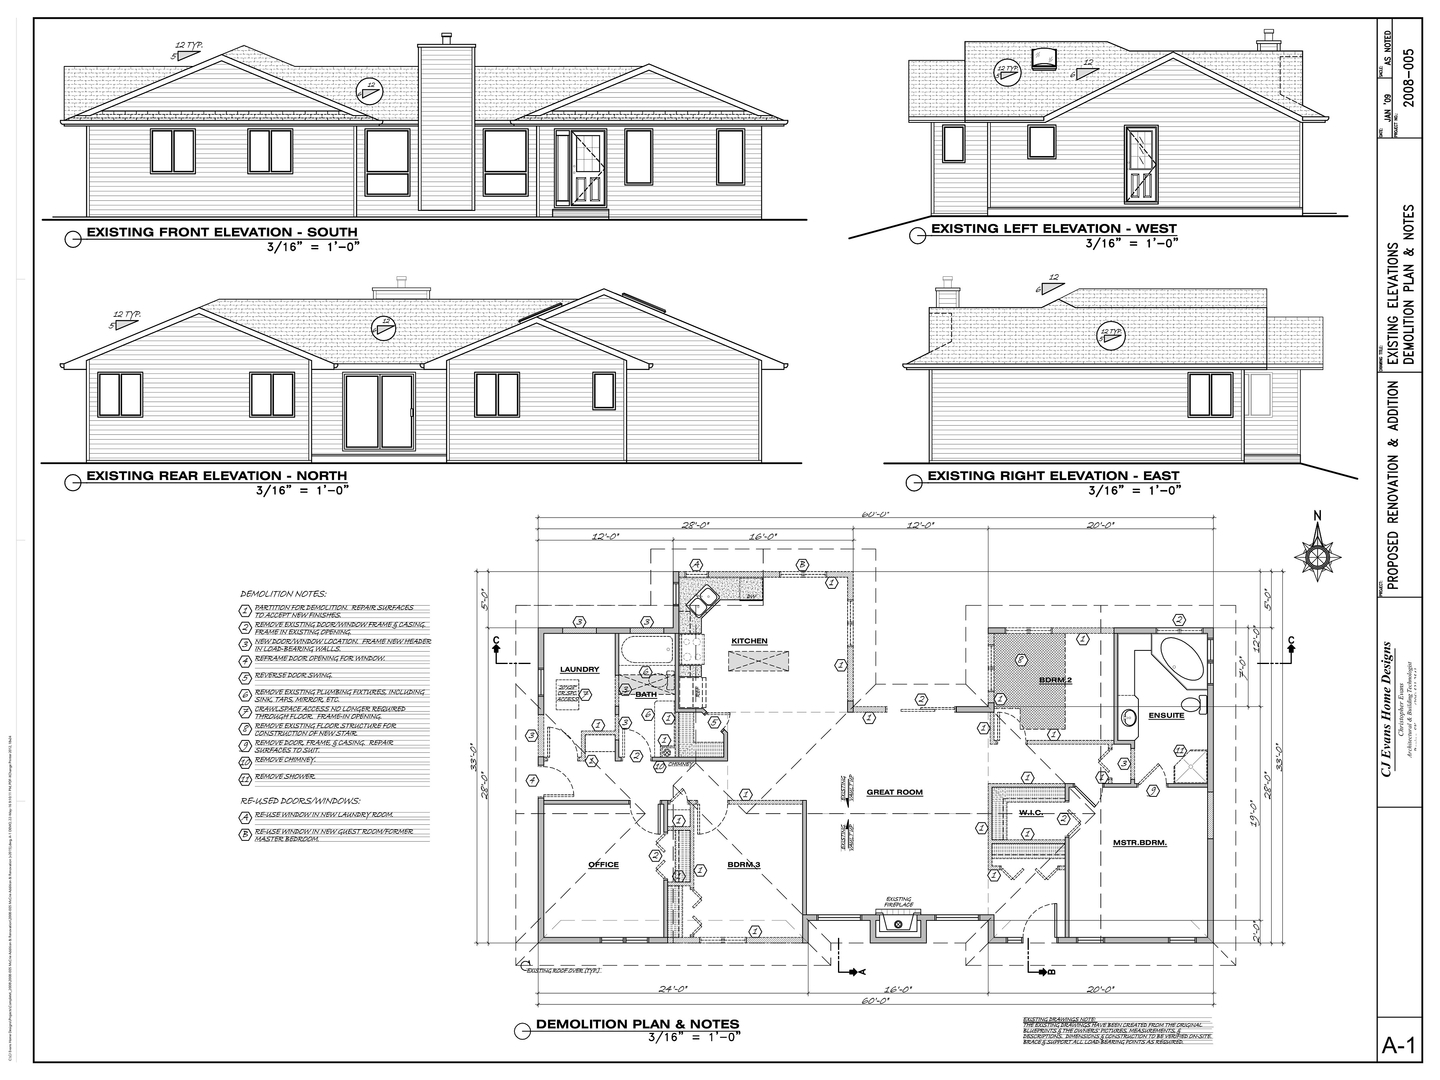 CJ Evans Home Designs: Projects